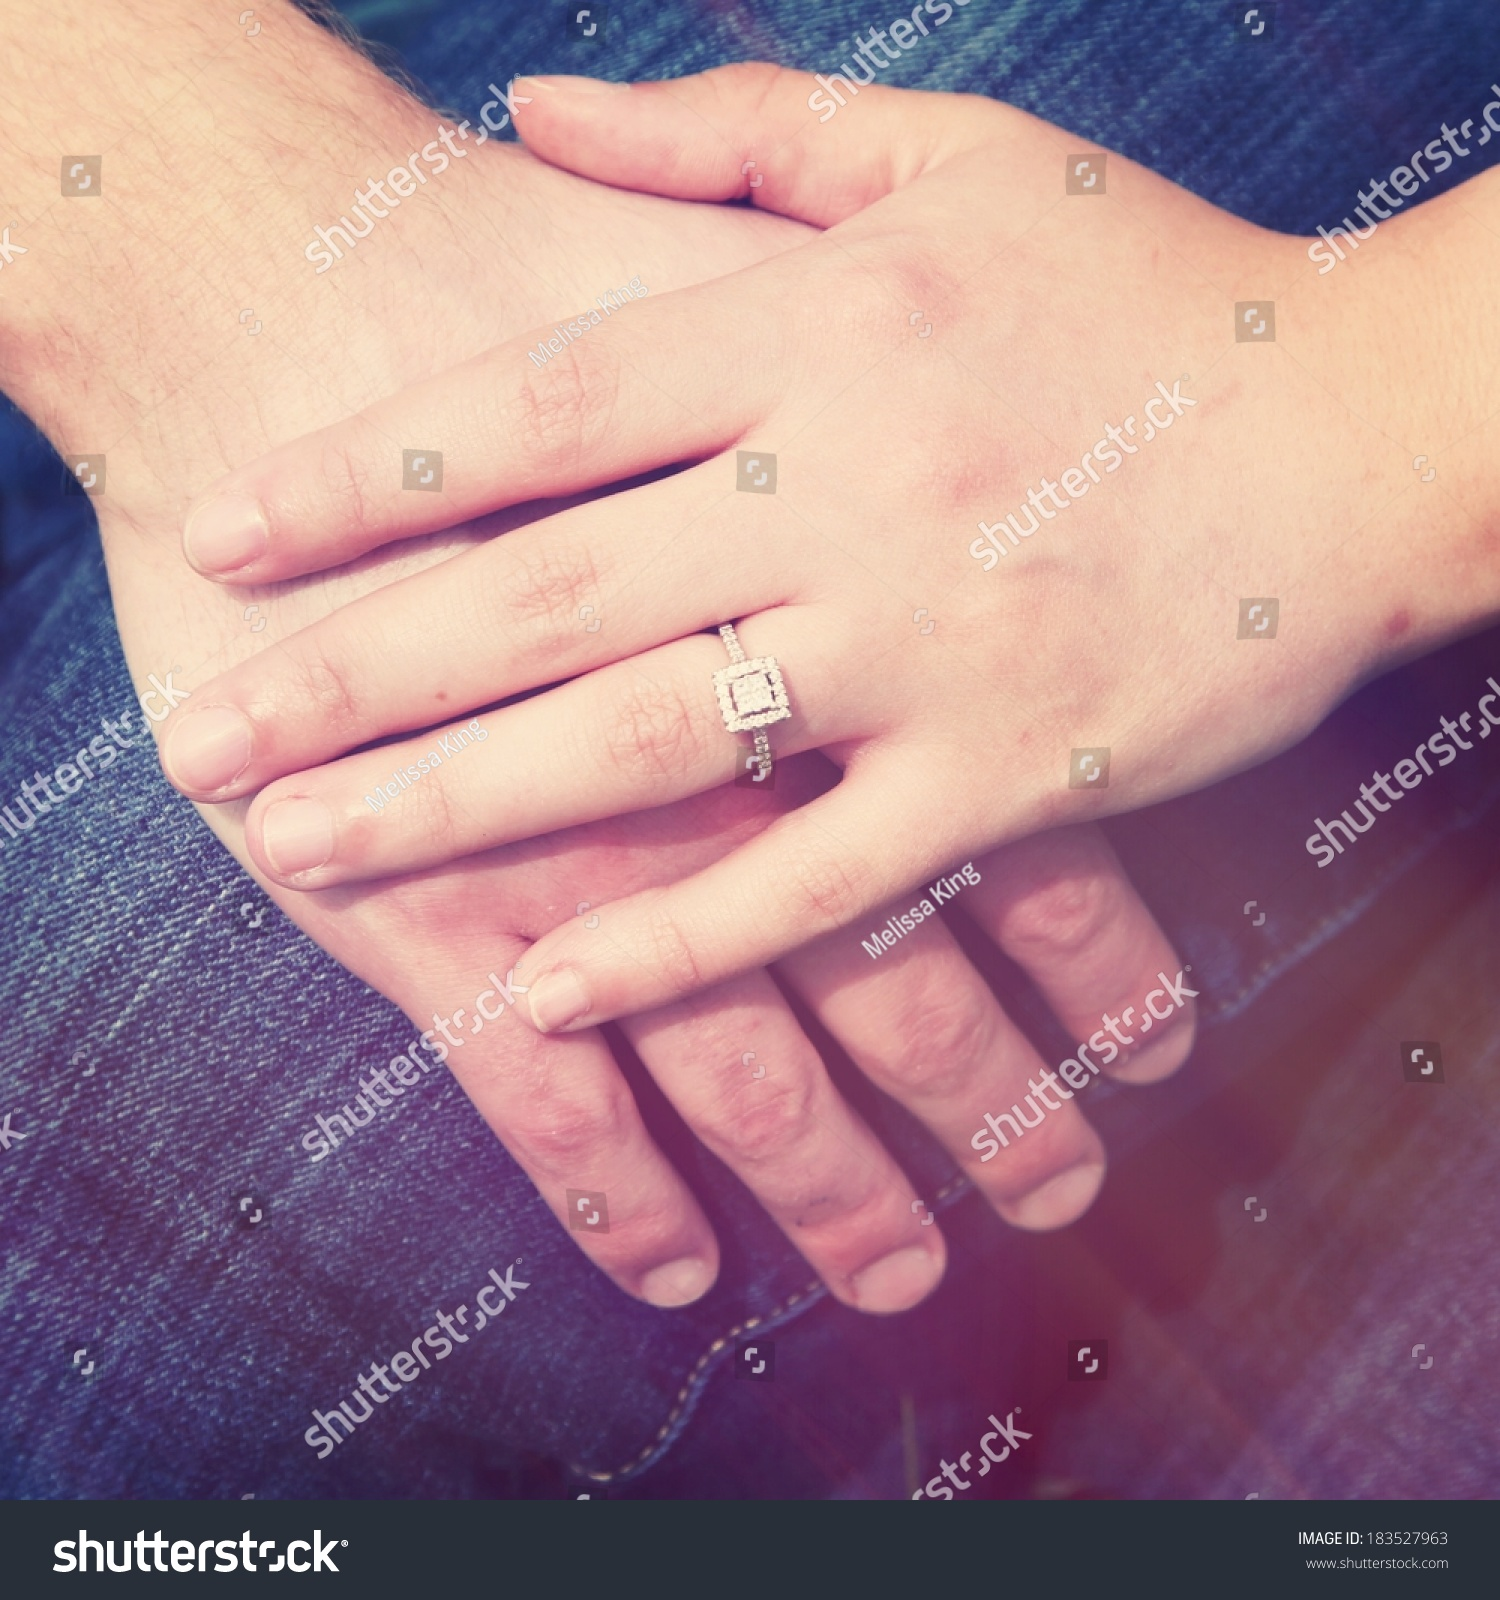 Hands Together Showing Ring Stock Photo (Edit Now) 183527963 ...